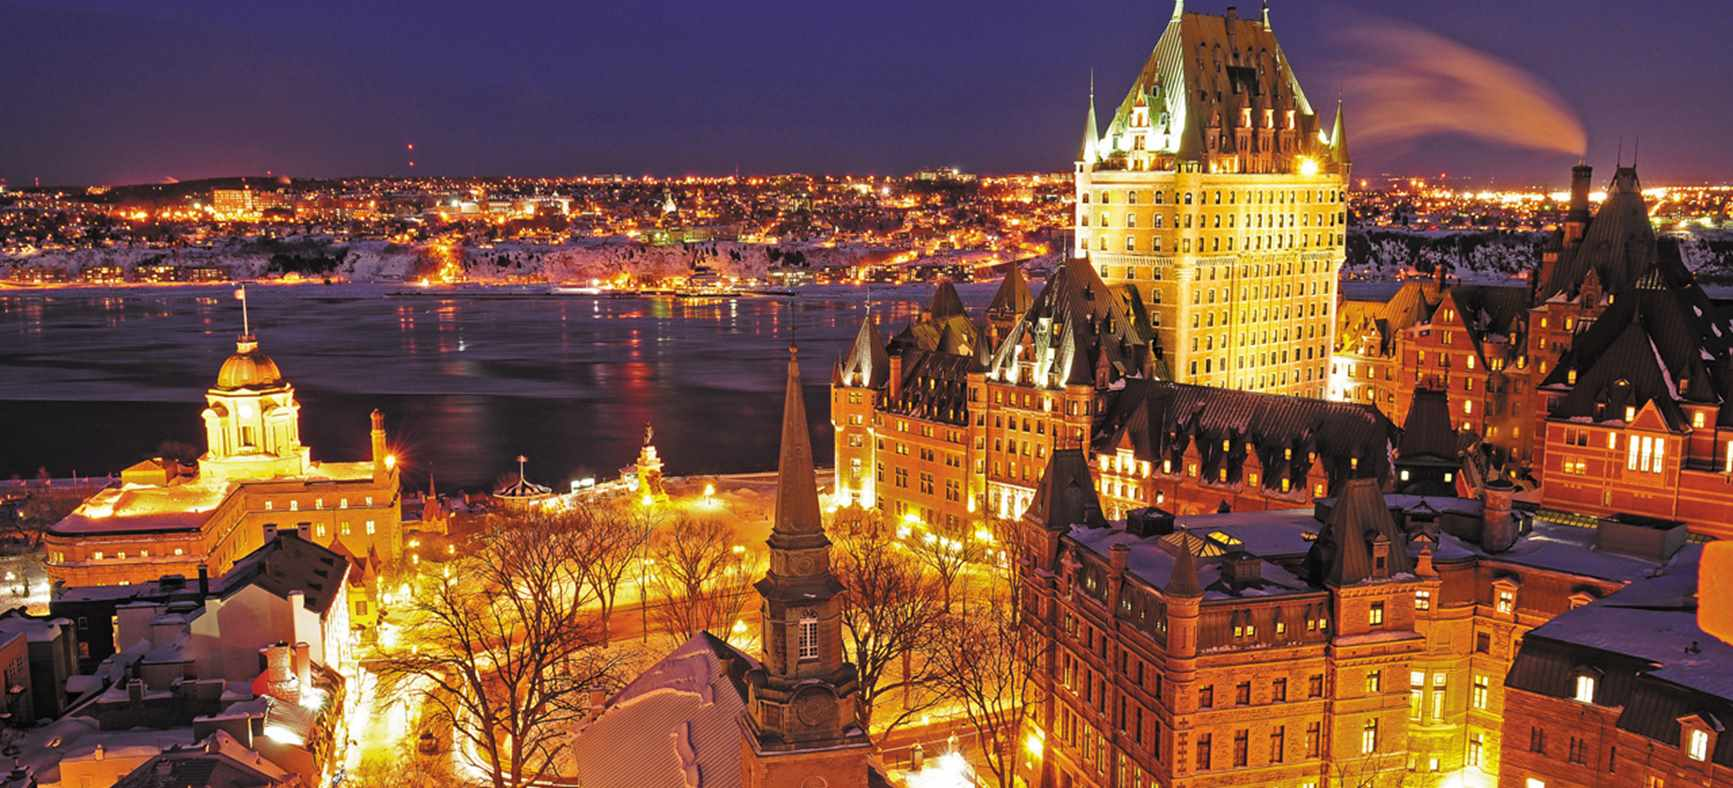 quebec_city at night